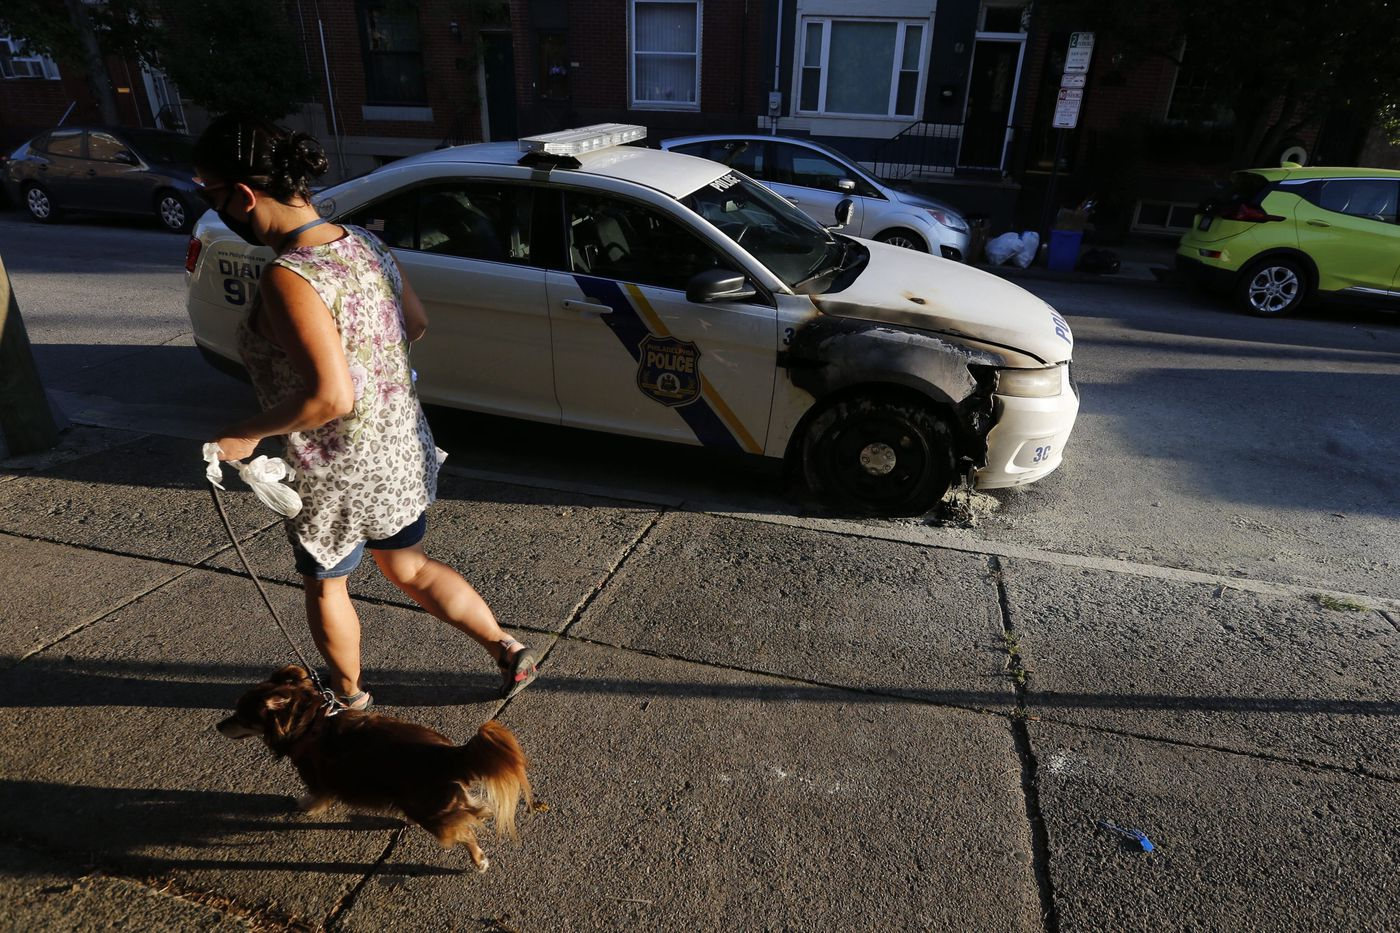 A police car was burned at 11th and Wharton streets in South Philadelphia near the Third District police precinct.